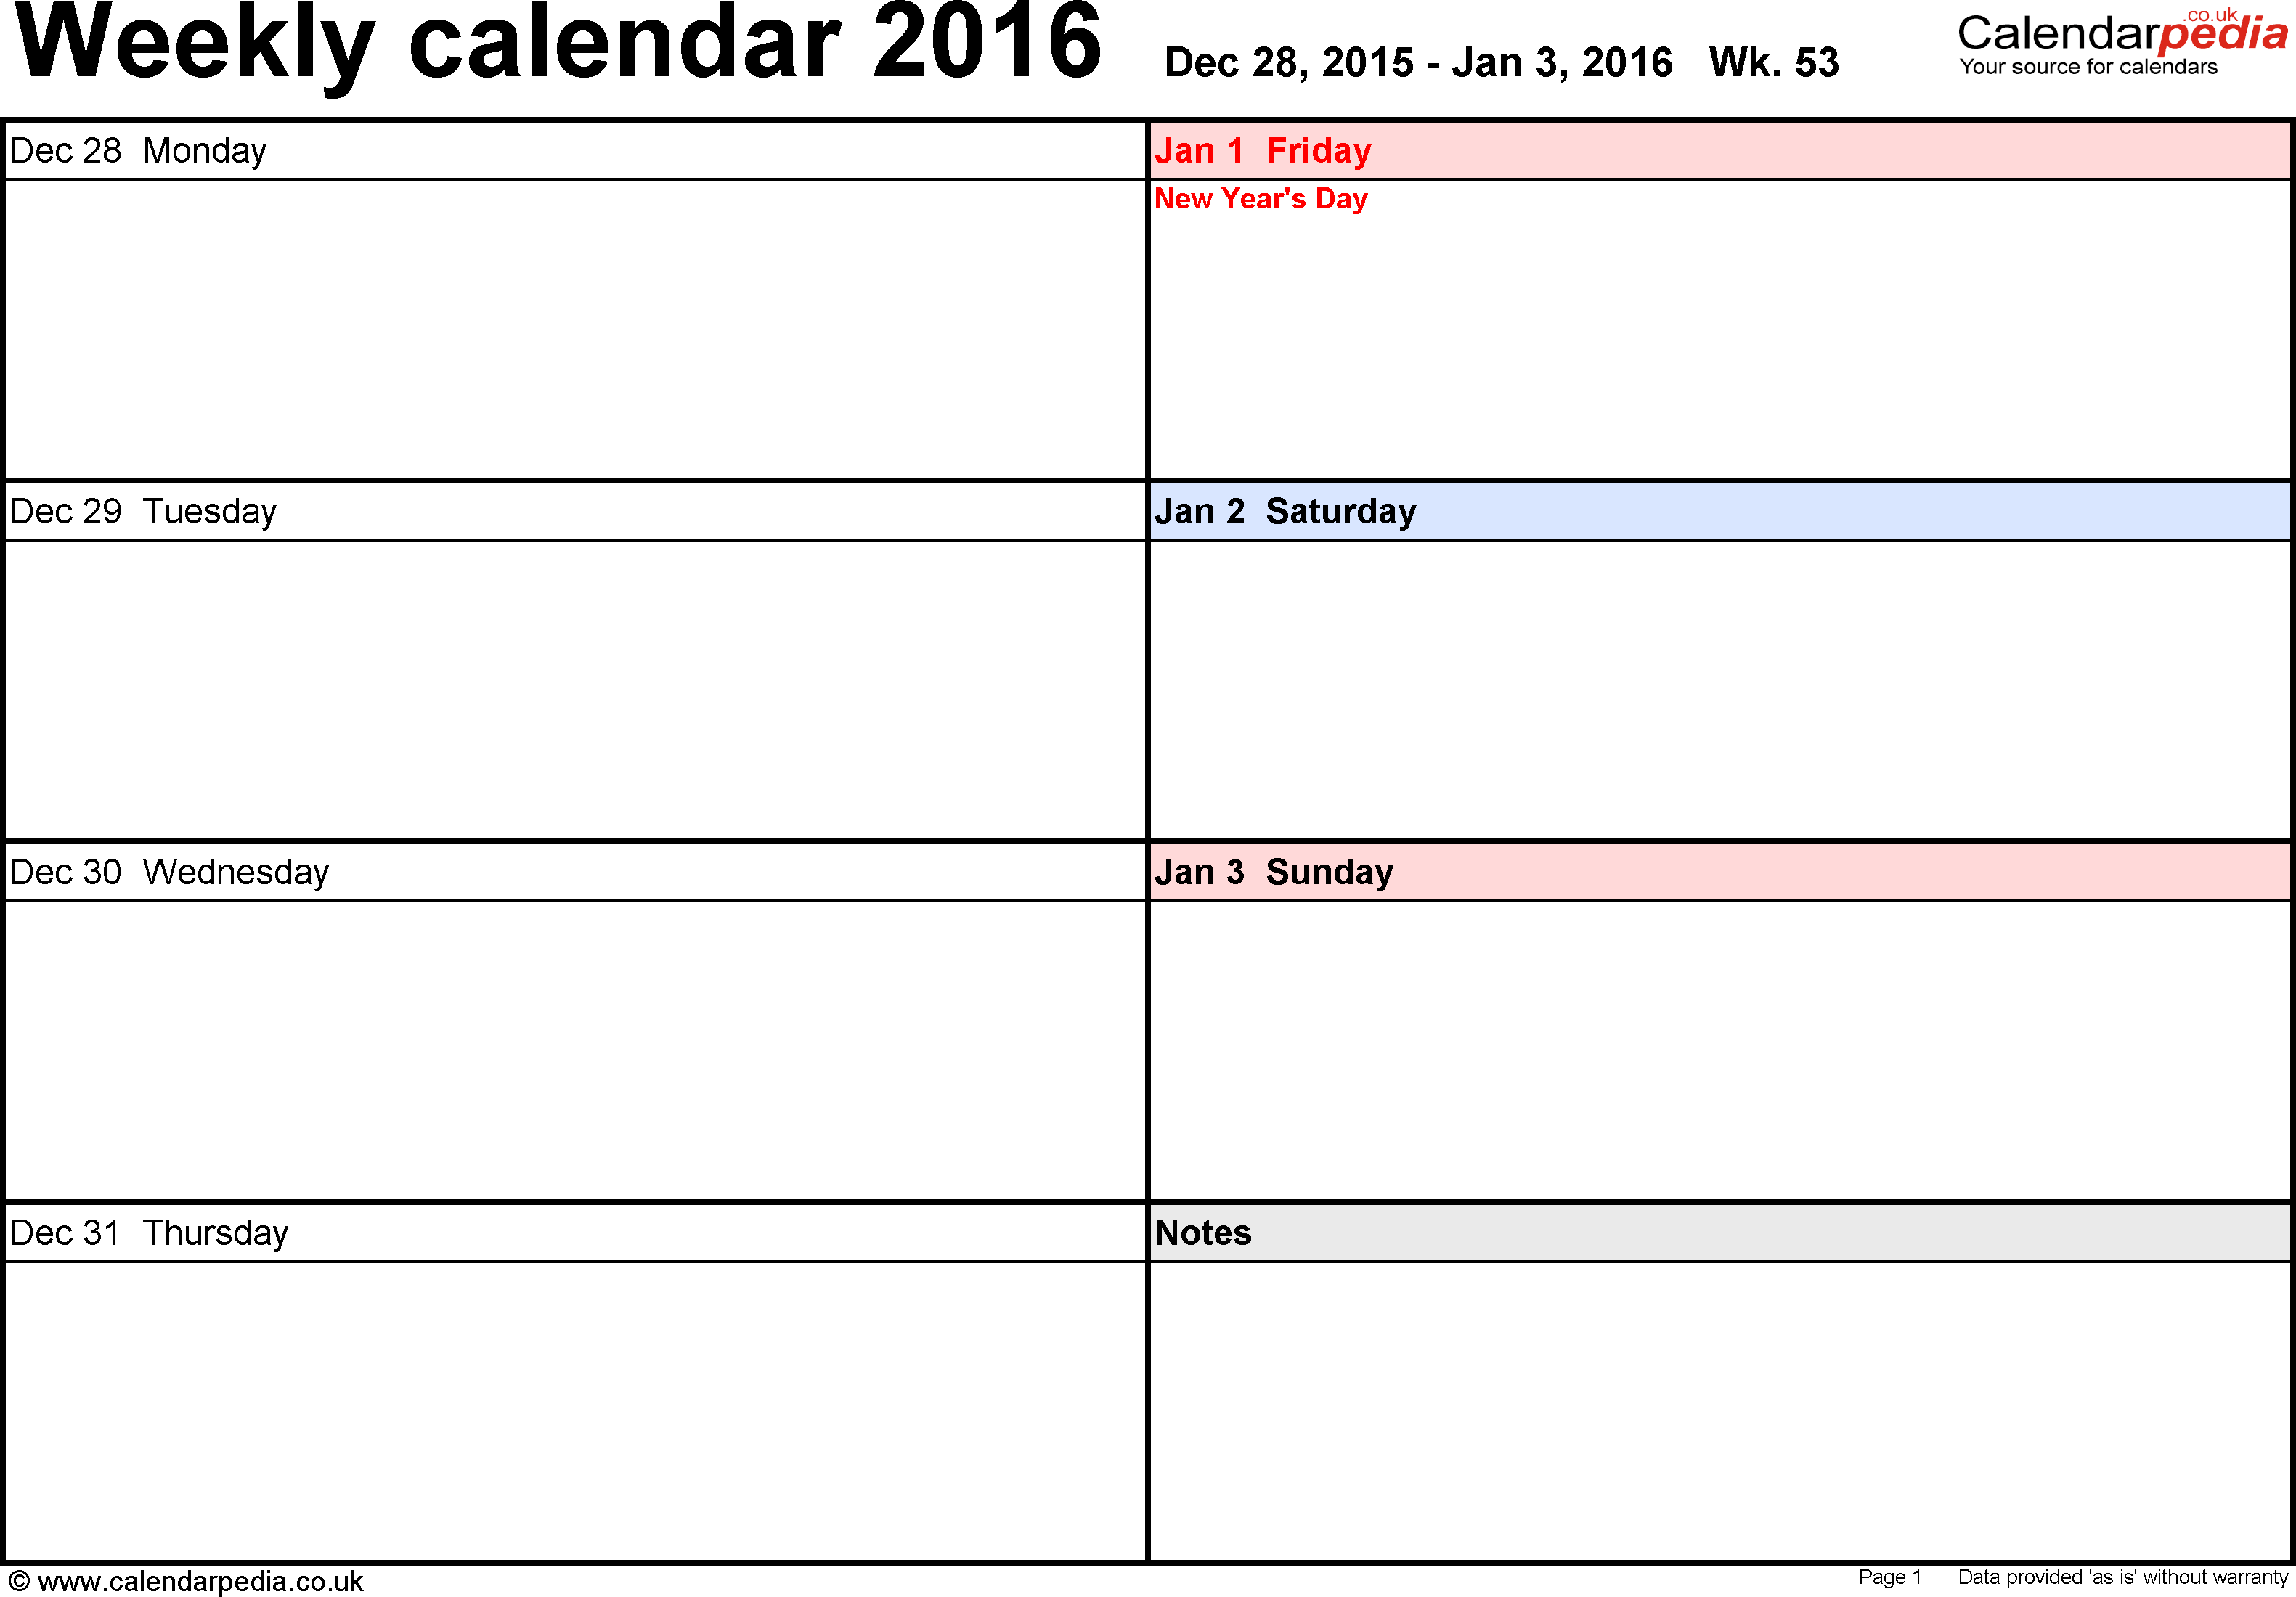 weekly meeting calendar template - printable weekly planner 2 page new calendar template site